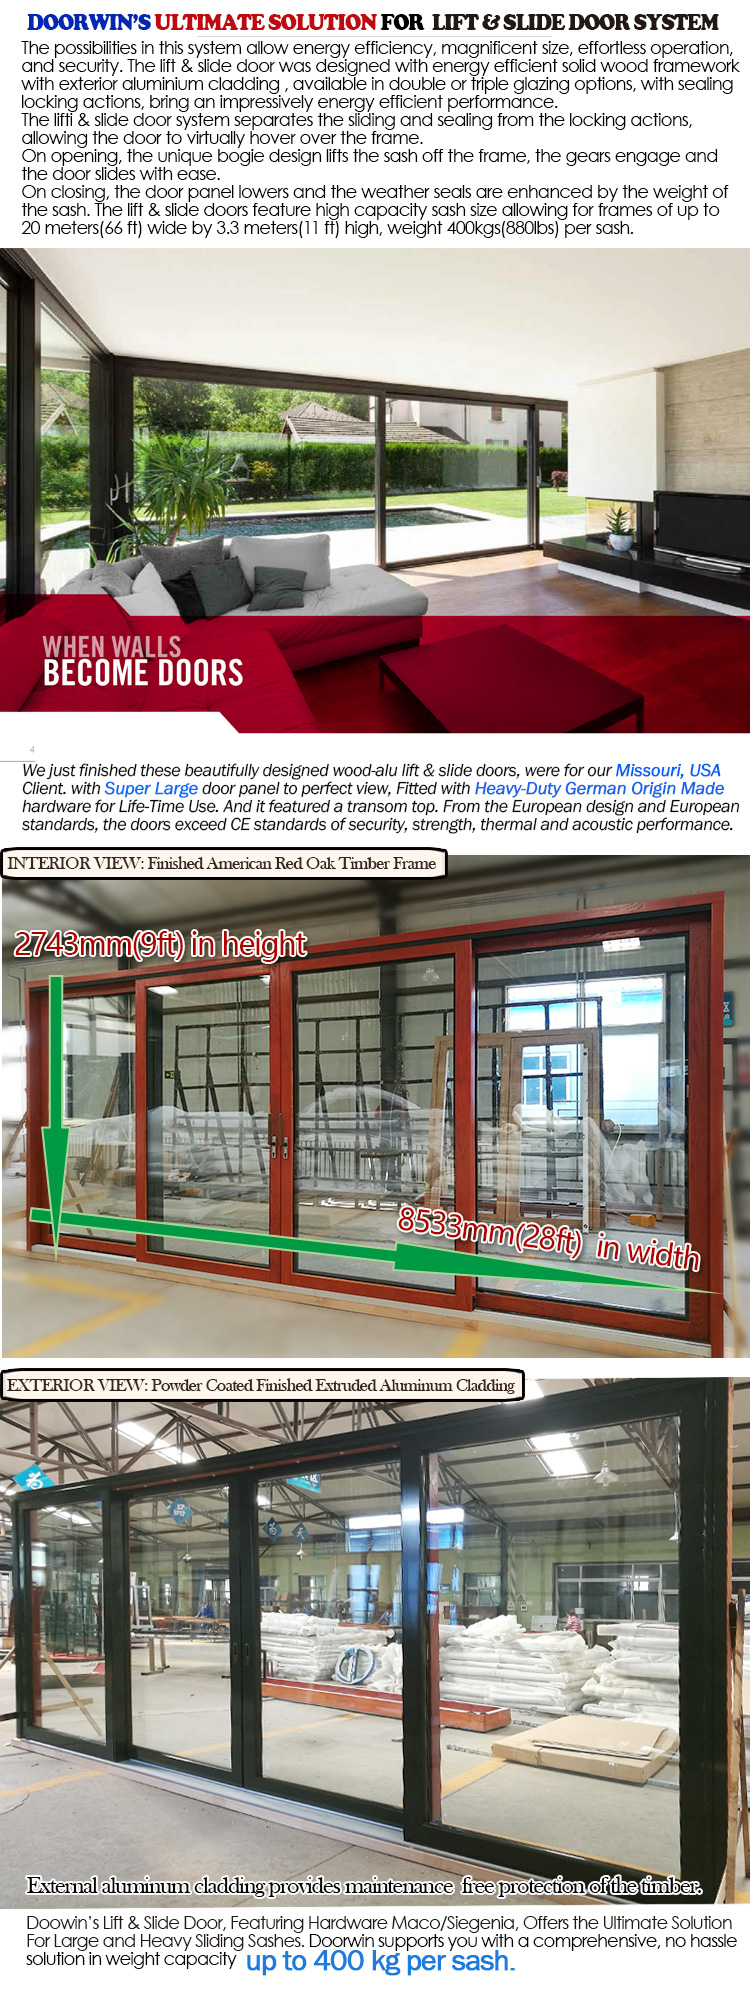 Curved glass sliding door competitive price commercial aluminum doors